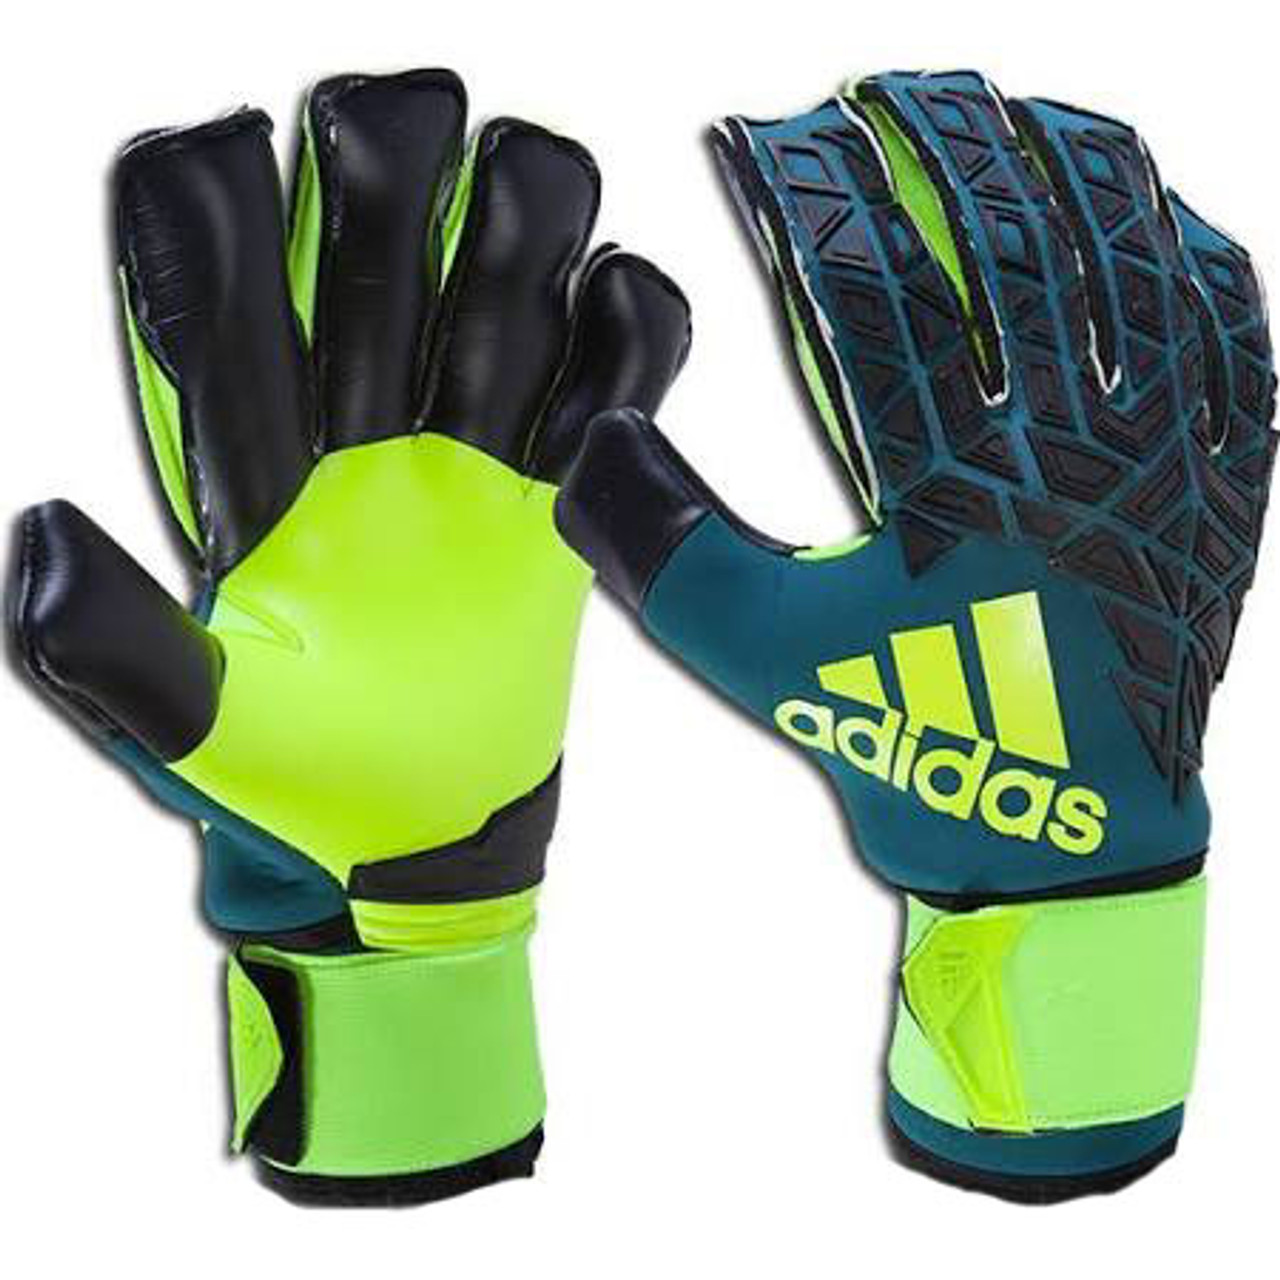 best service d2291 86f7f ADIDAS ACE TRANS ULTIMATE fingersave goalkeeper glove